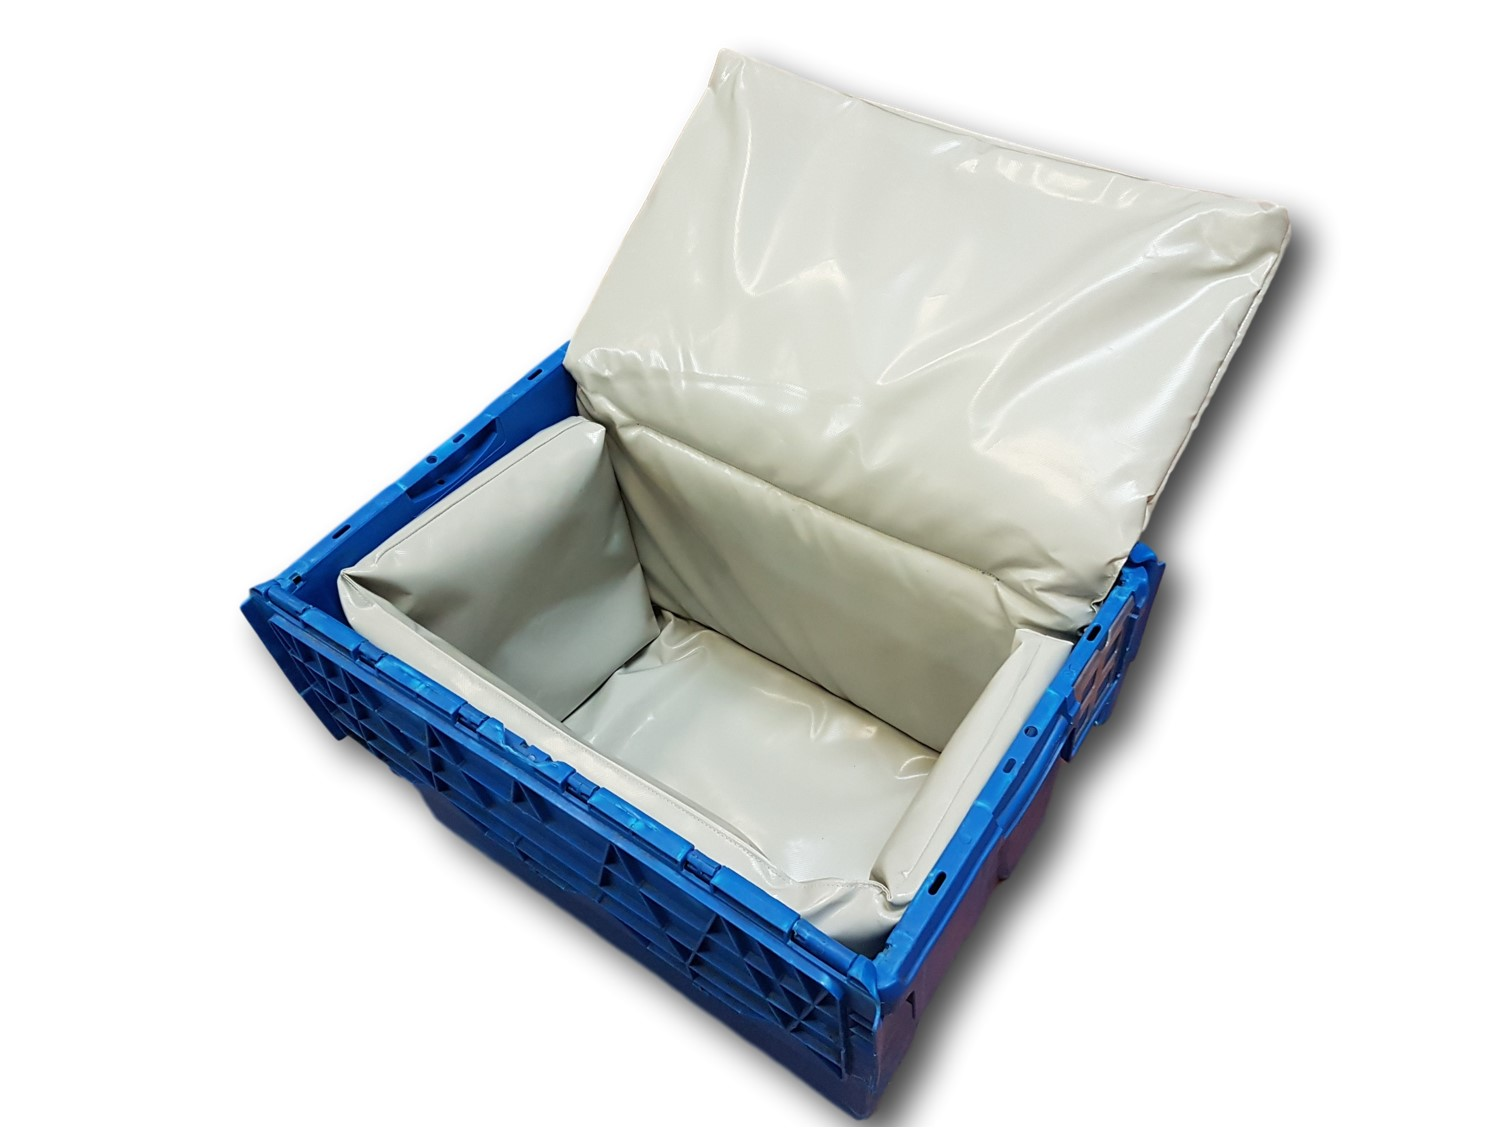 Box, pack, crate, insulated case: a crocodile case 600x400 mm with a cotton insulation insert from COLD & CO.